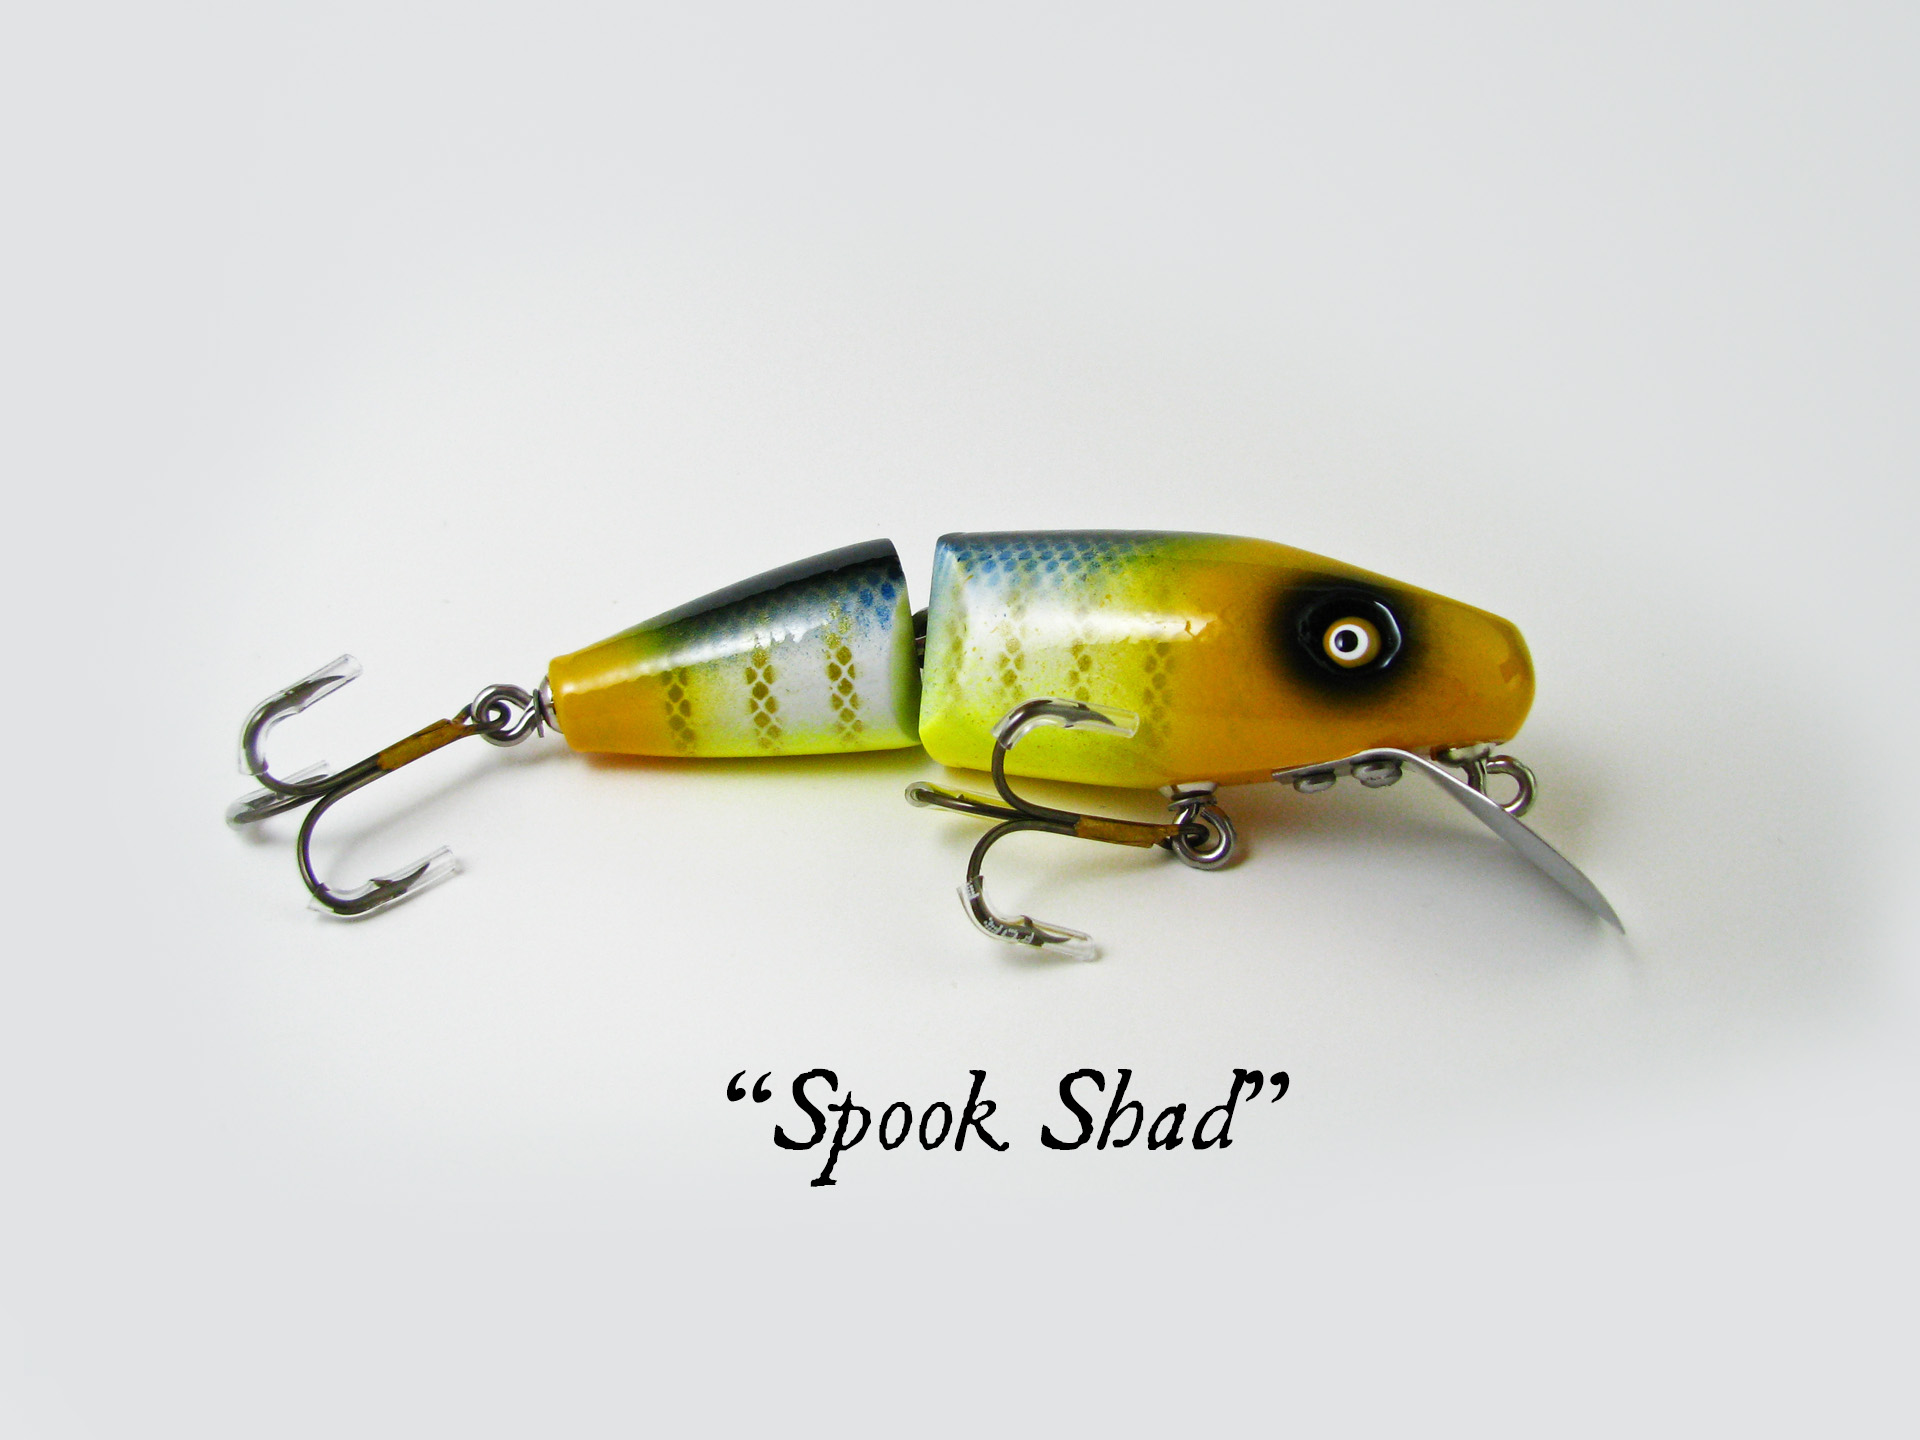 Super Shark_Spook Shad.jpg